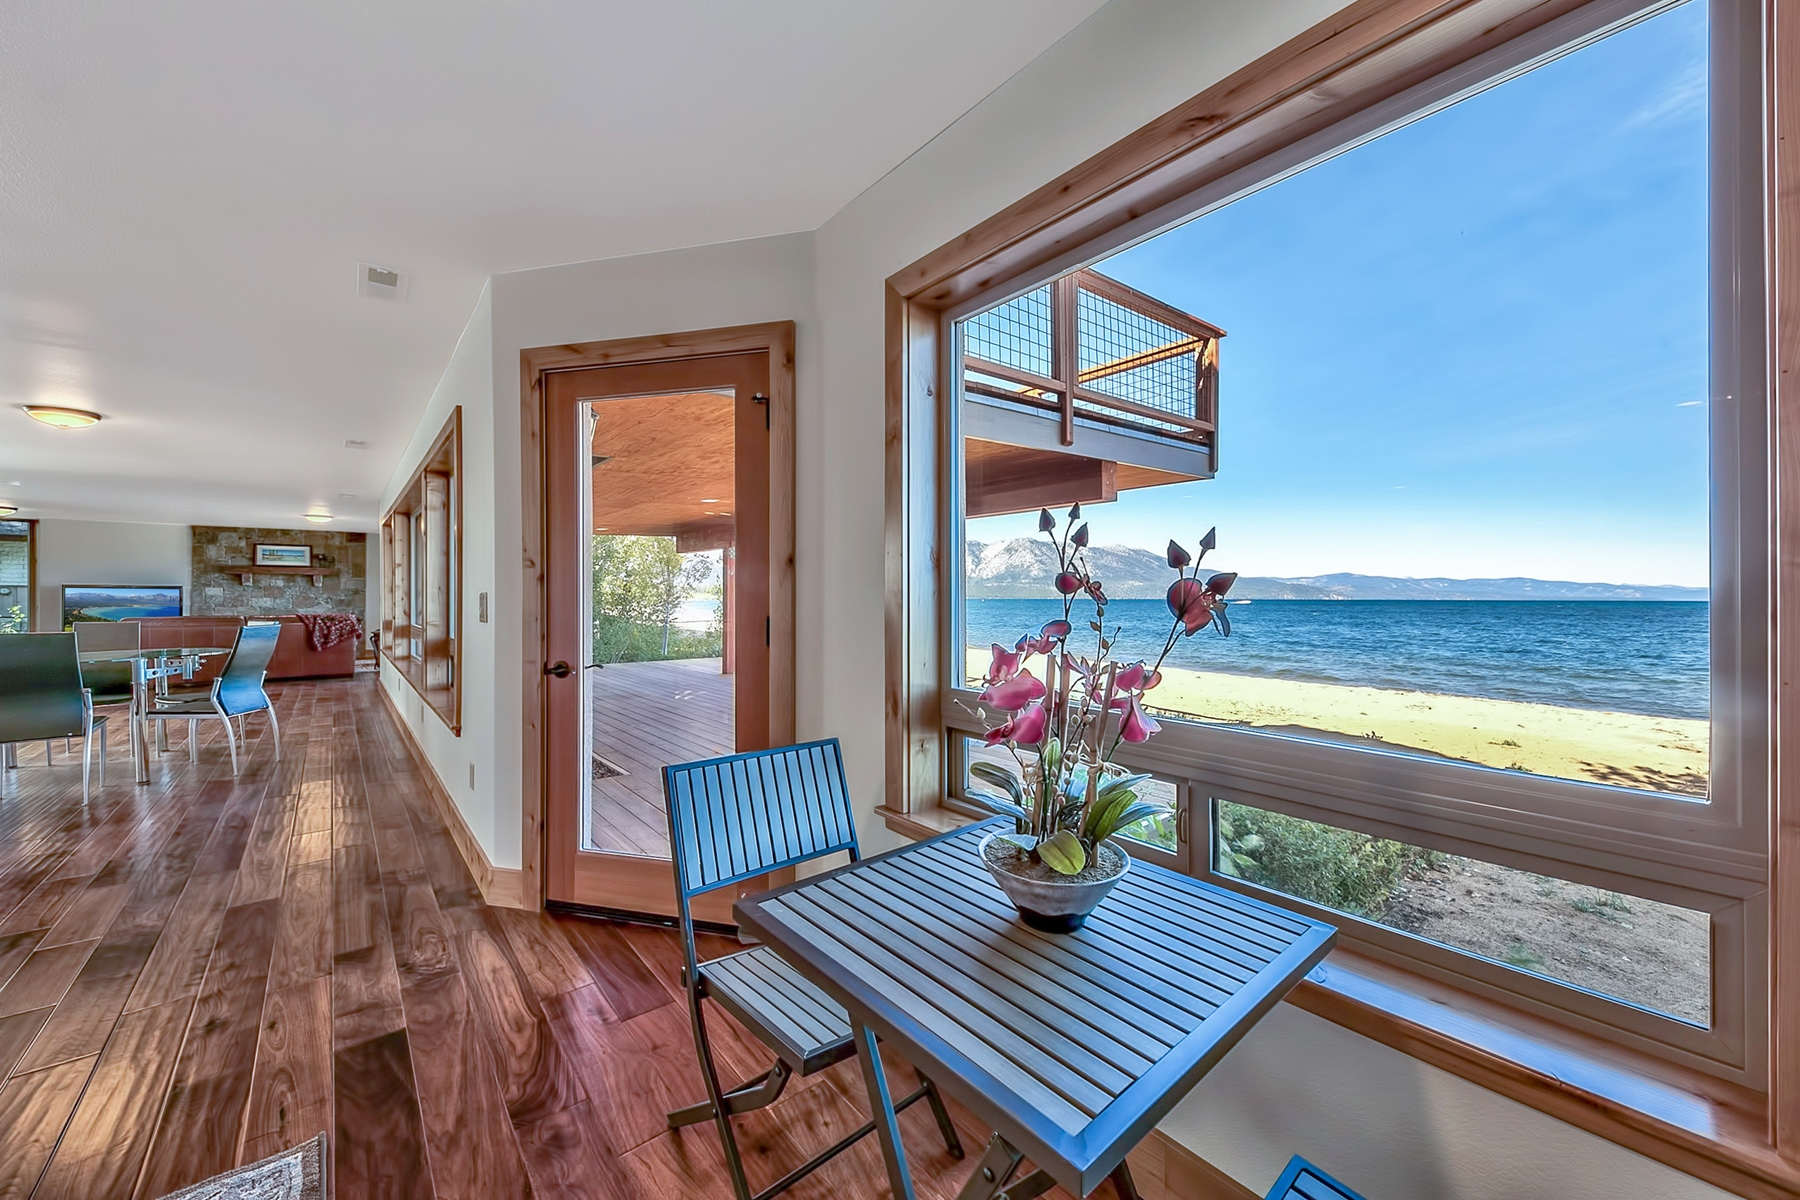 single family homes for Active at 319 Beach Drive South Lake Tahoe California, 96150 319 Beach Drive South Lake Tahoe, California 96150 United States